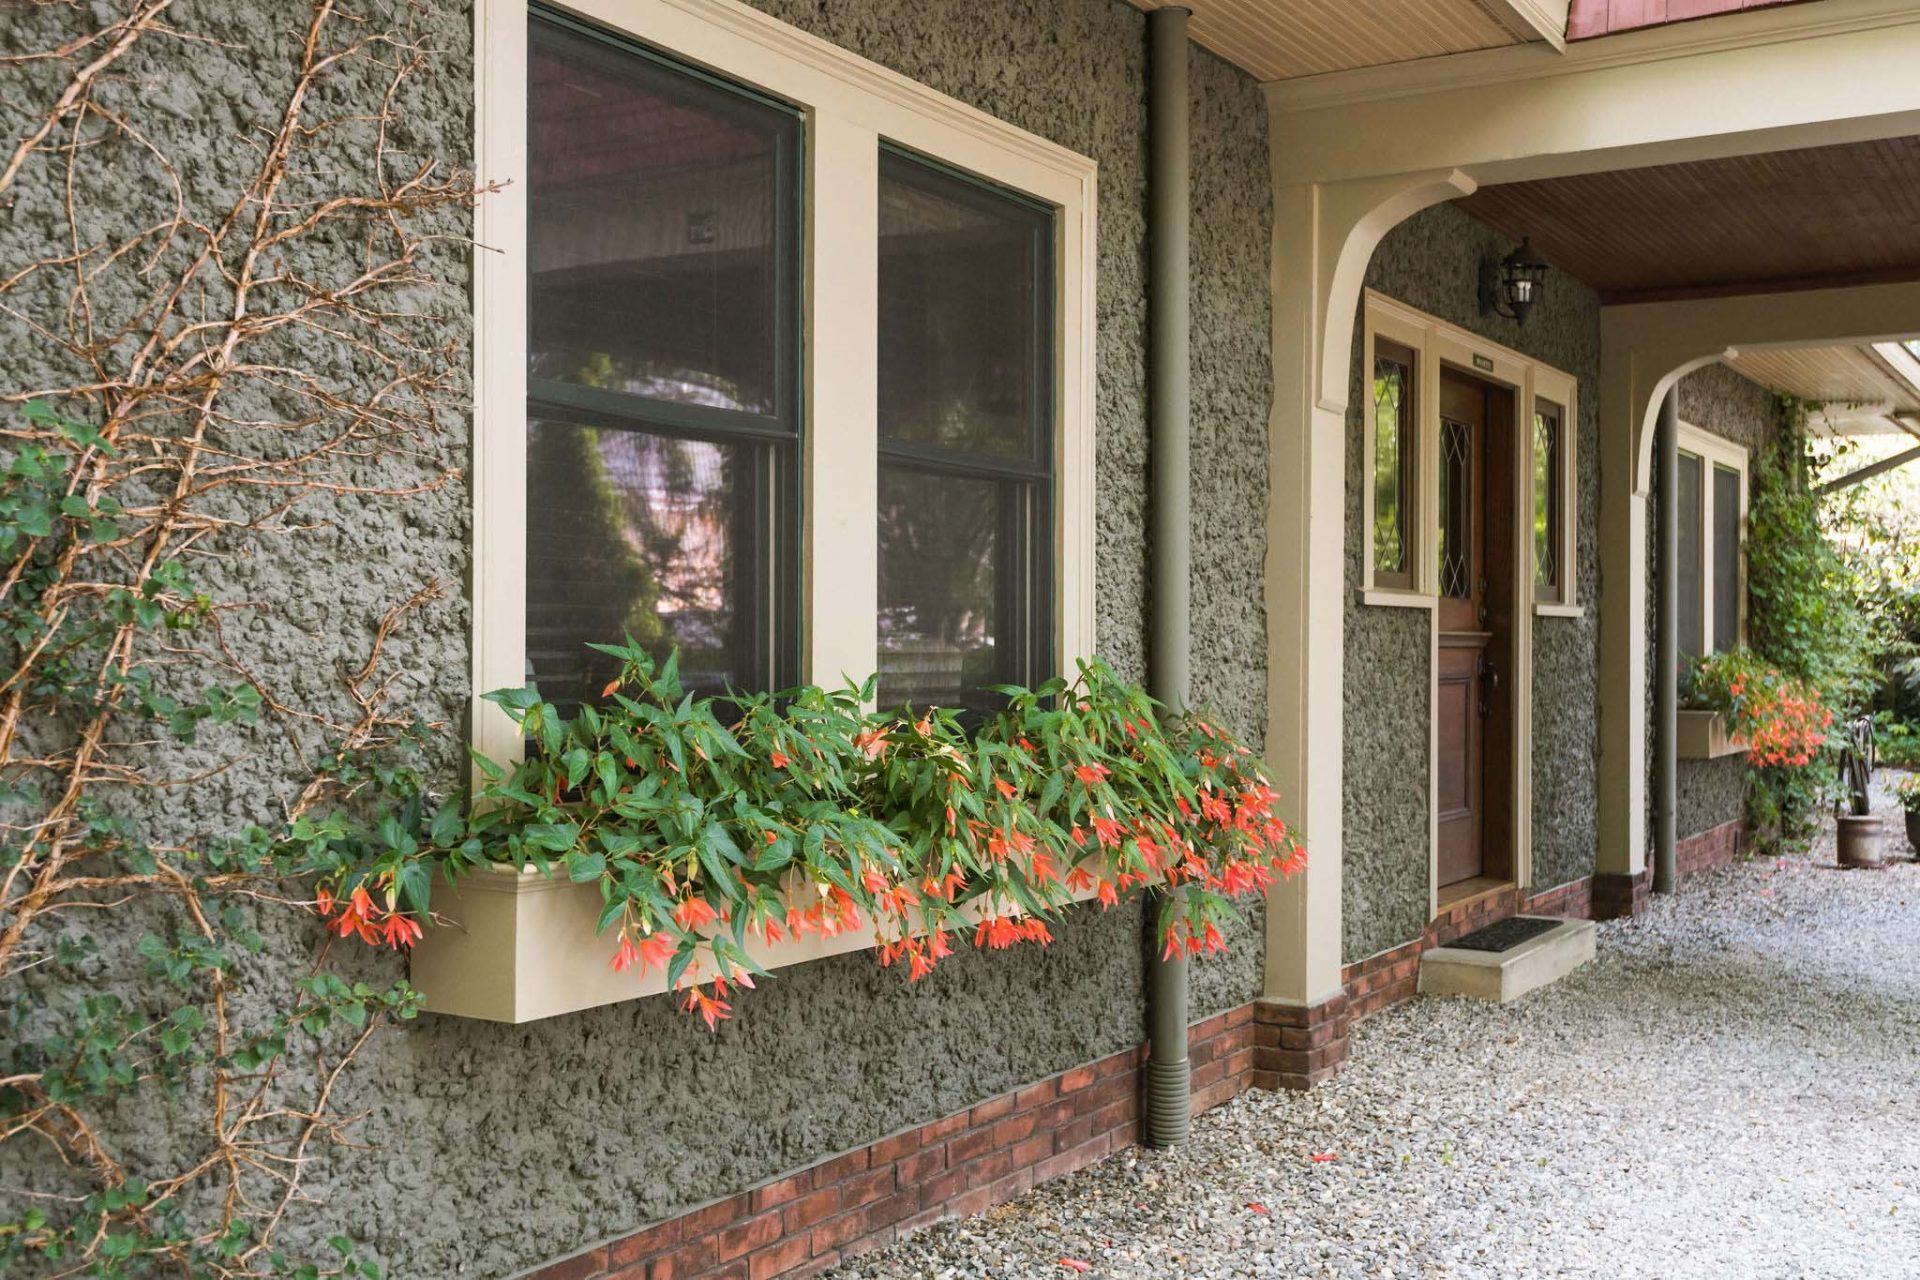 Entrance to the cloister suite in the carriage house. A grey wall with windows on each side of the door, window box planters with red flowers.